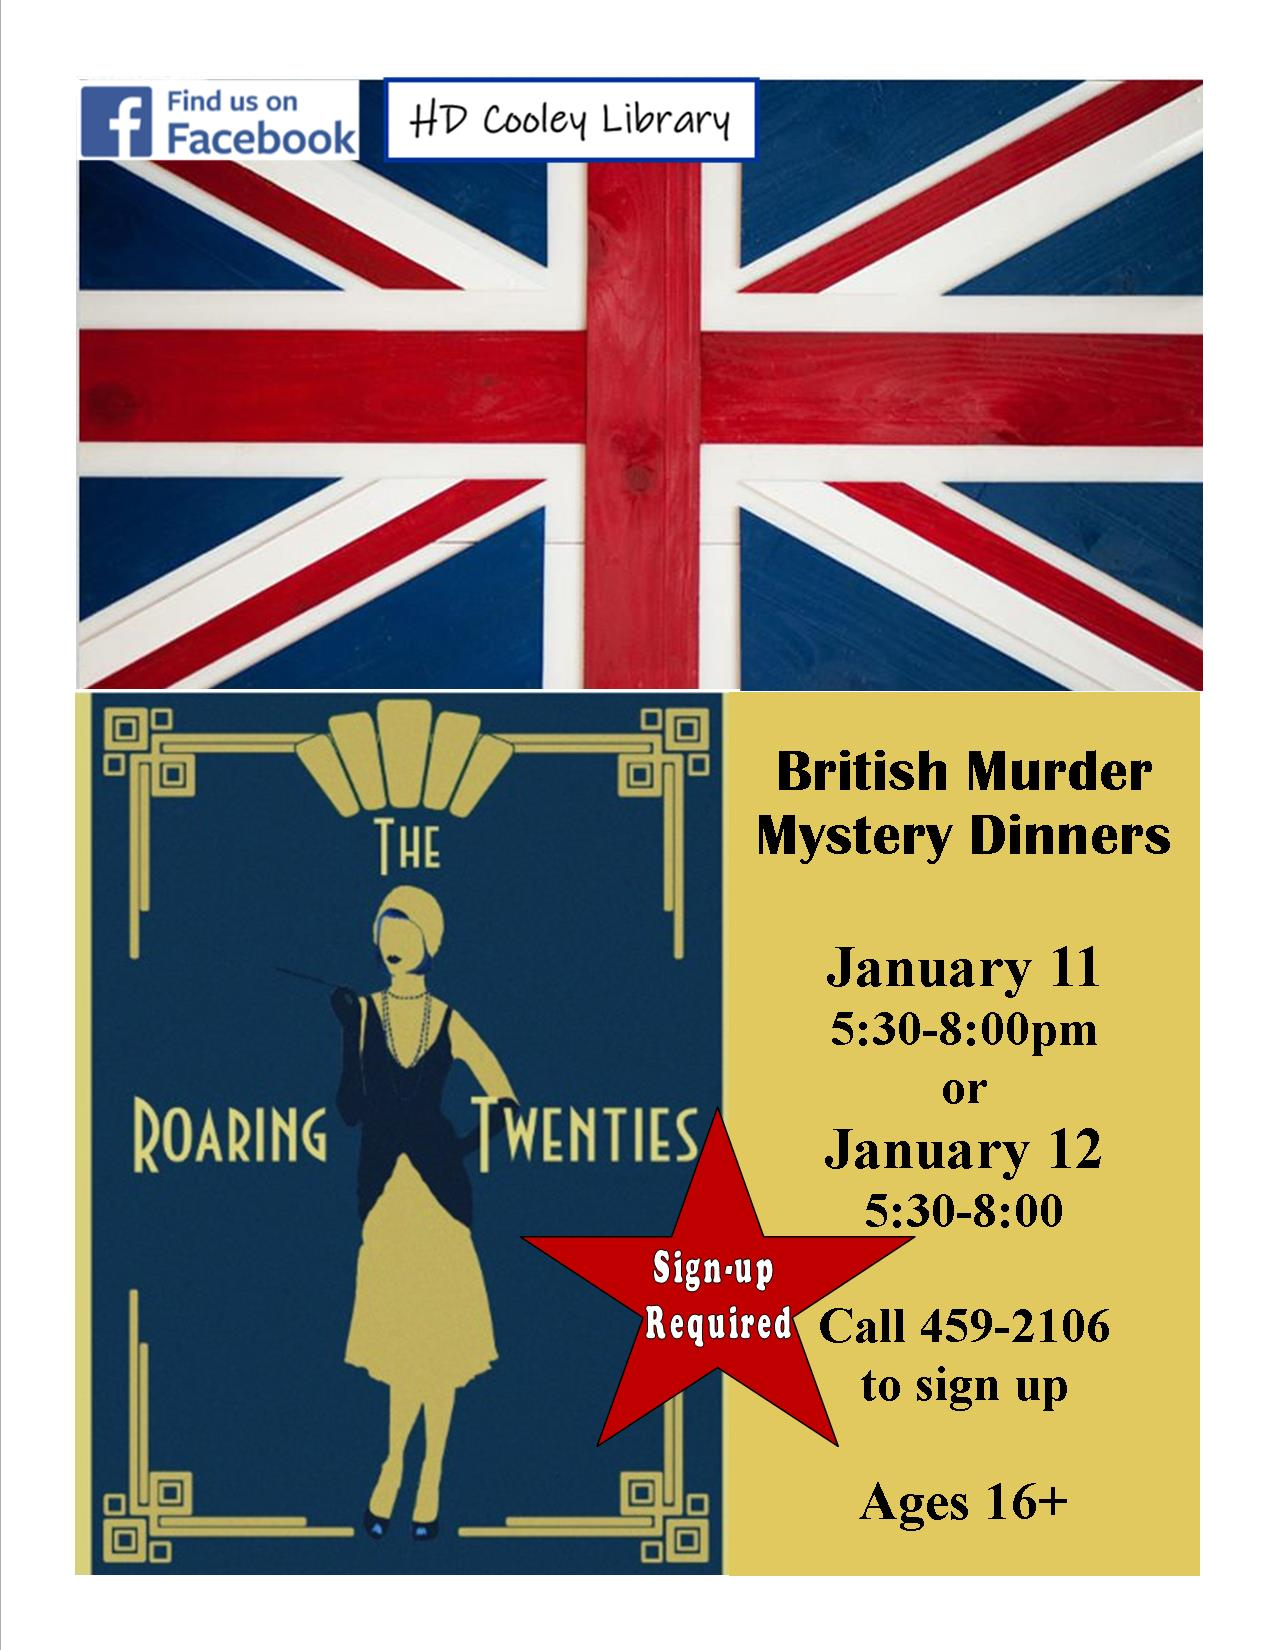 British Murder Mystery Dinner schedule